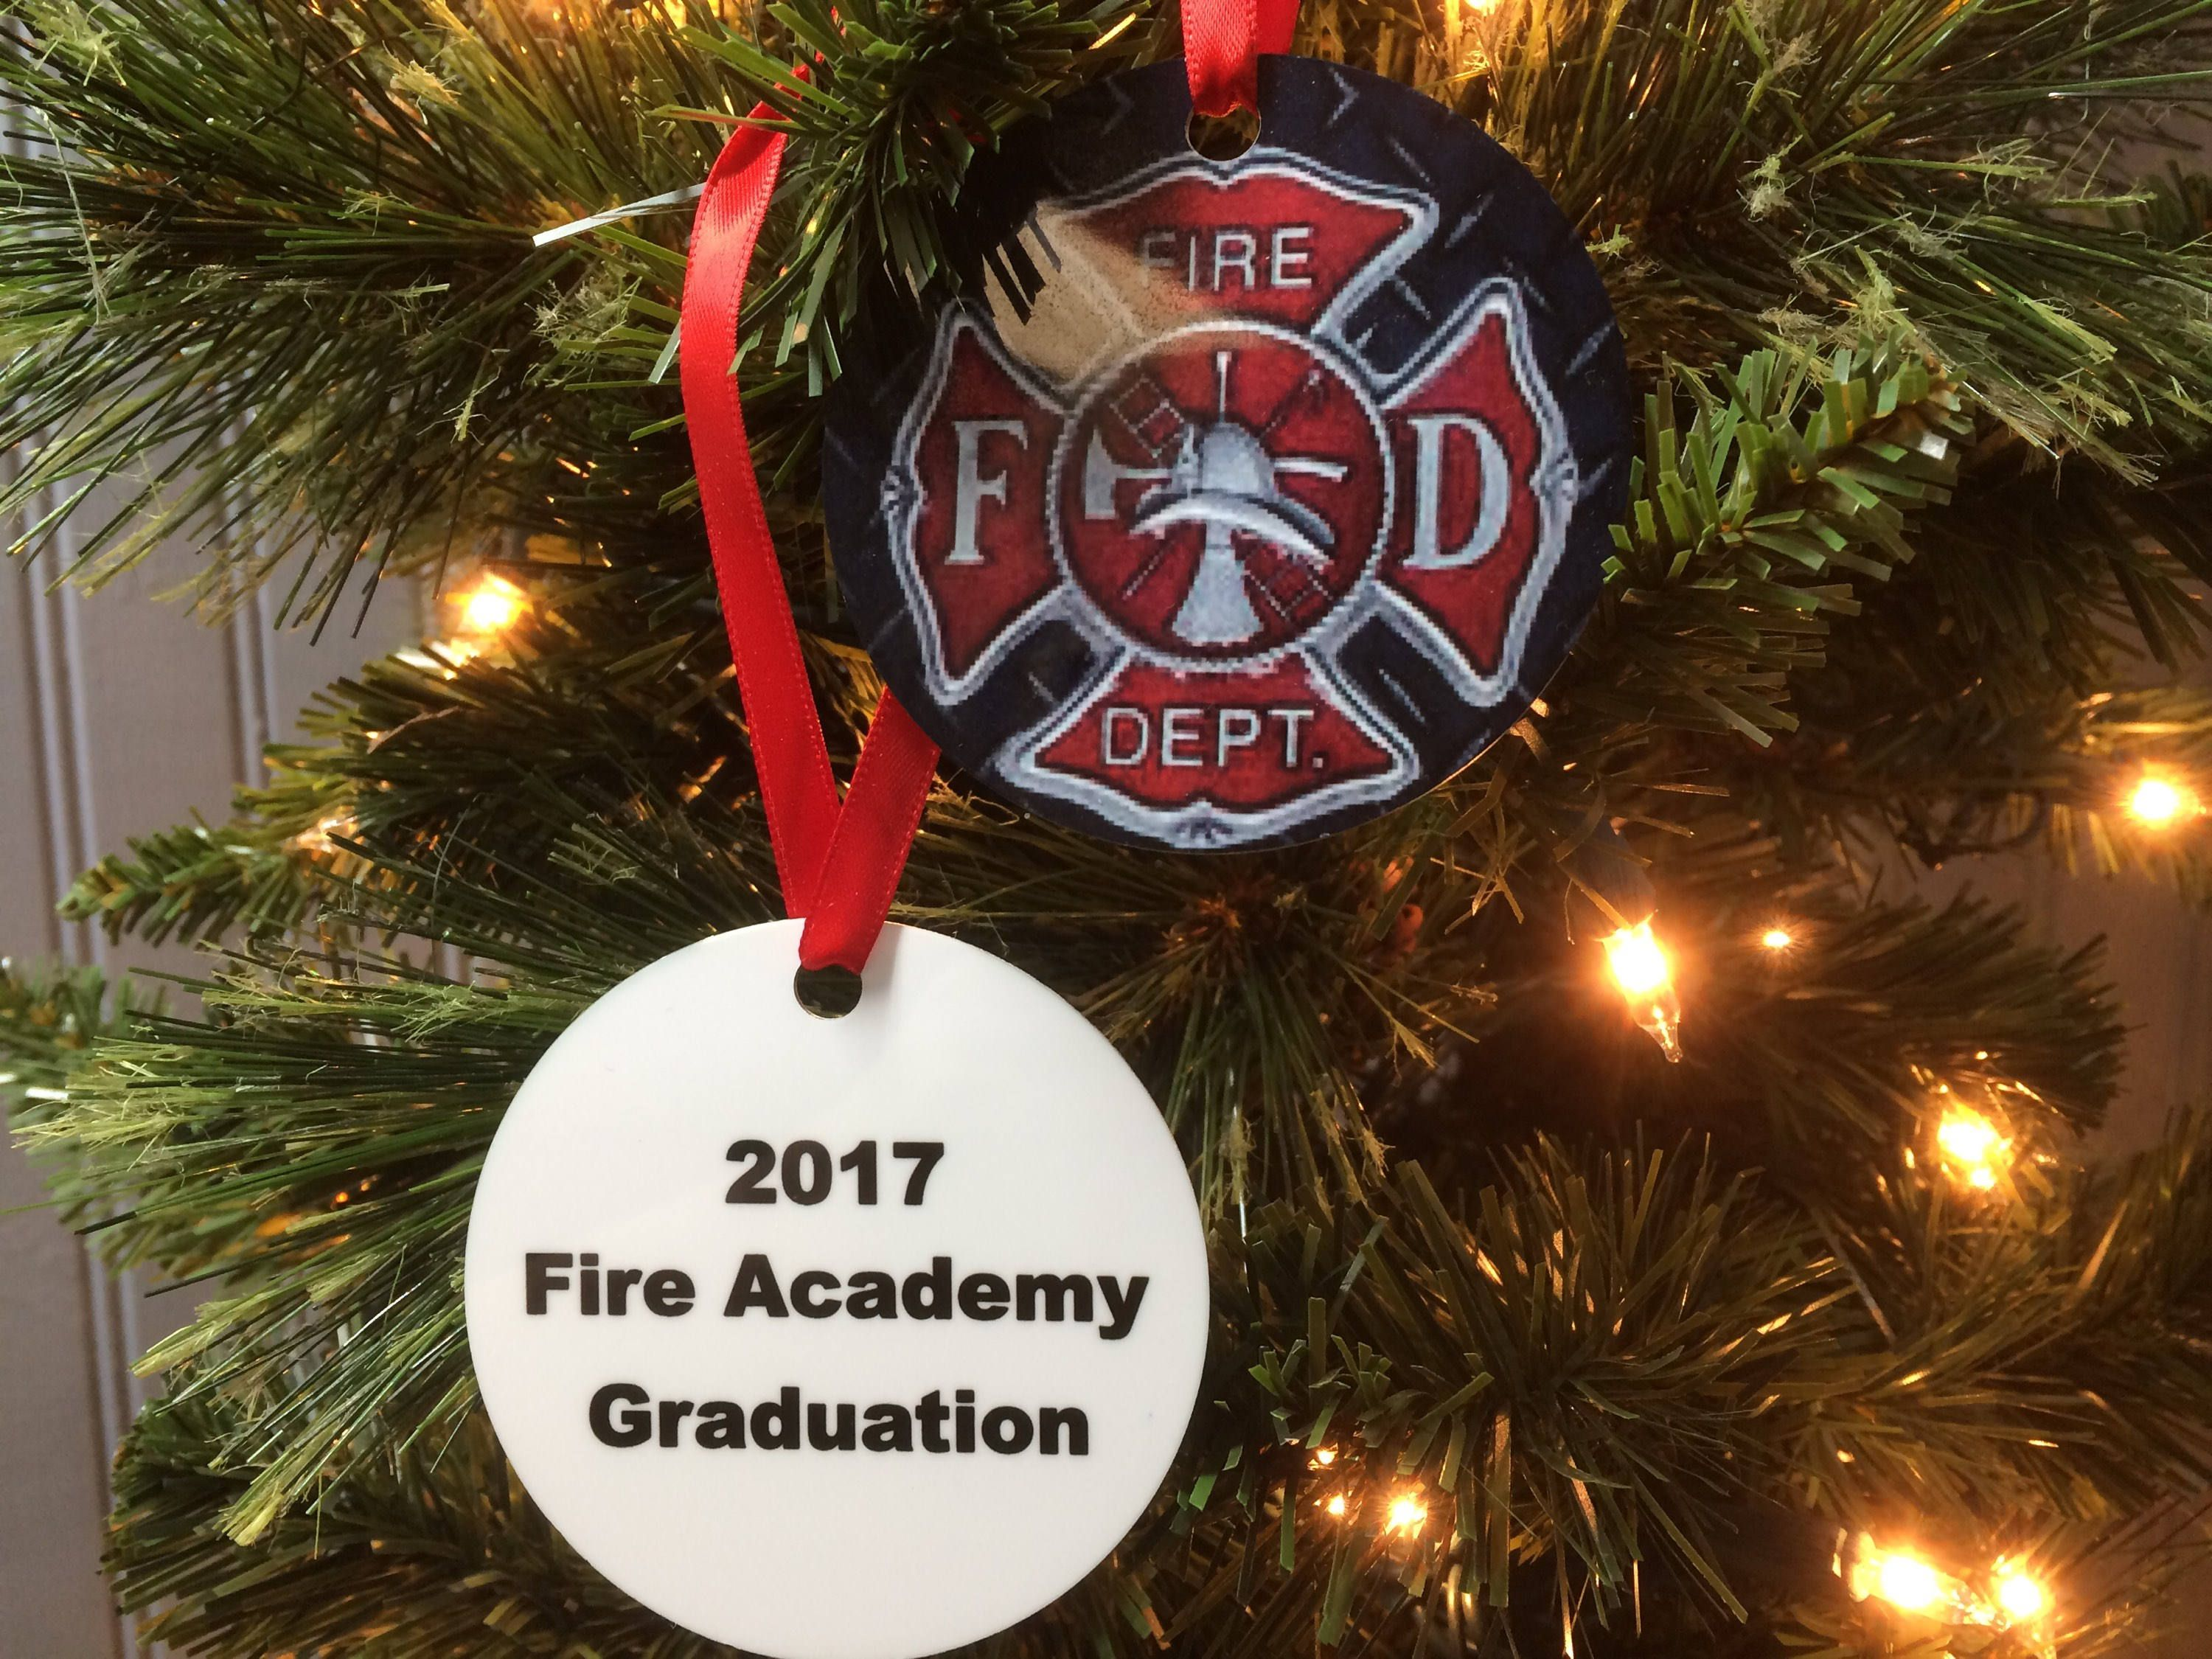 fire academy graduation gift personalized text ornament for firemen firefighter maltese cross present christmas bulk orders welcome